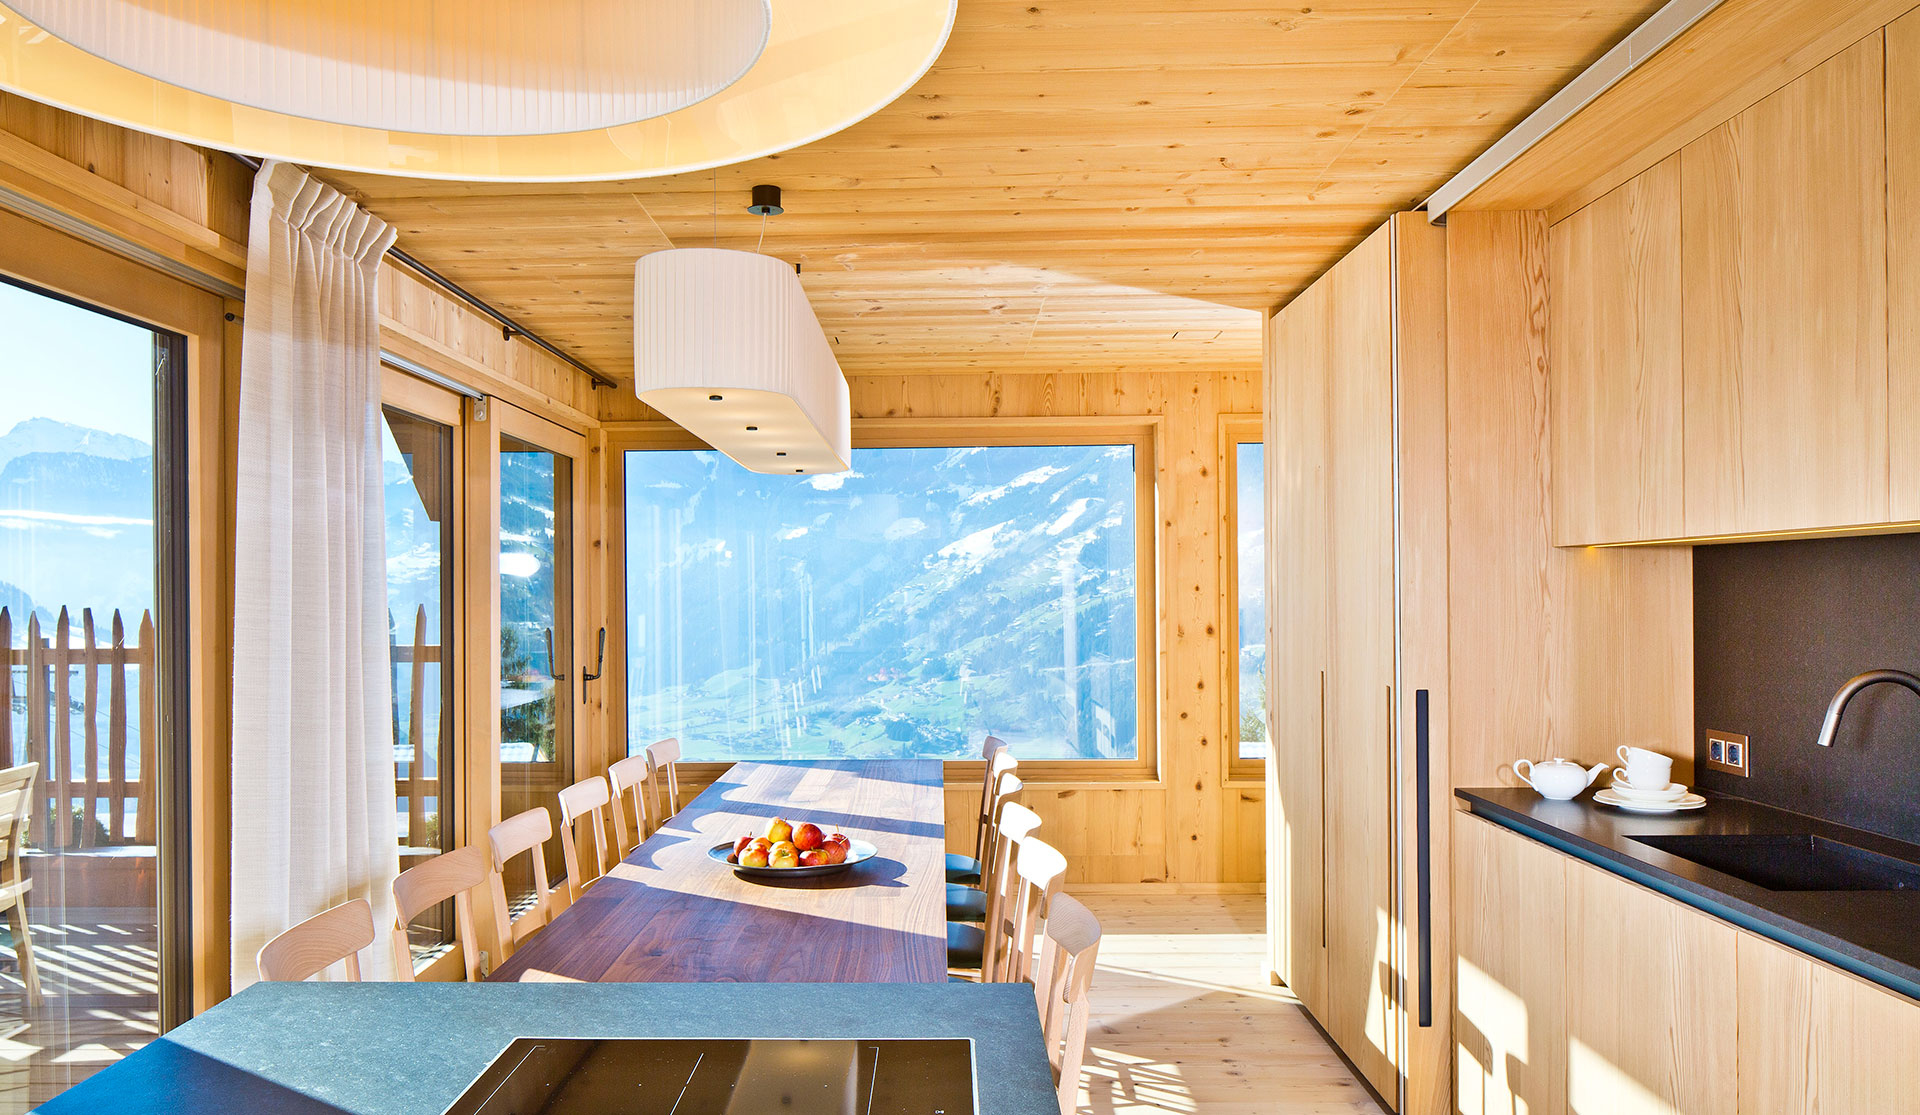 Private alpine chalet - Austria (AT)